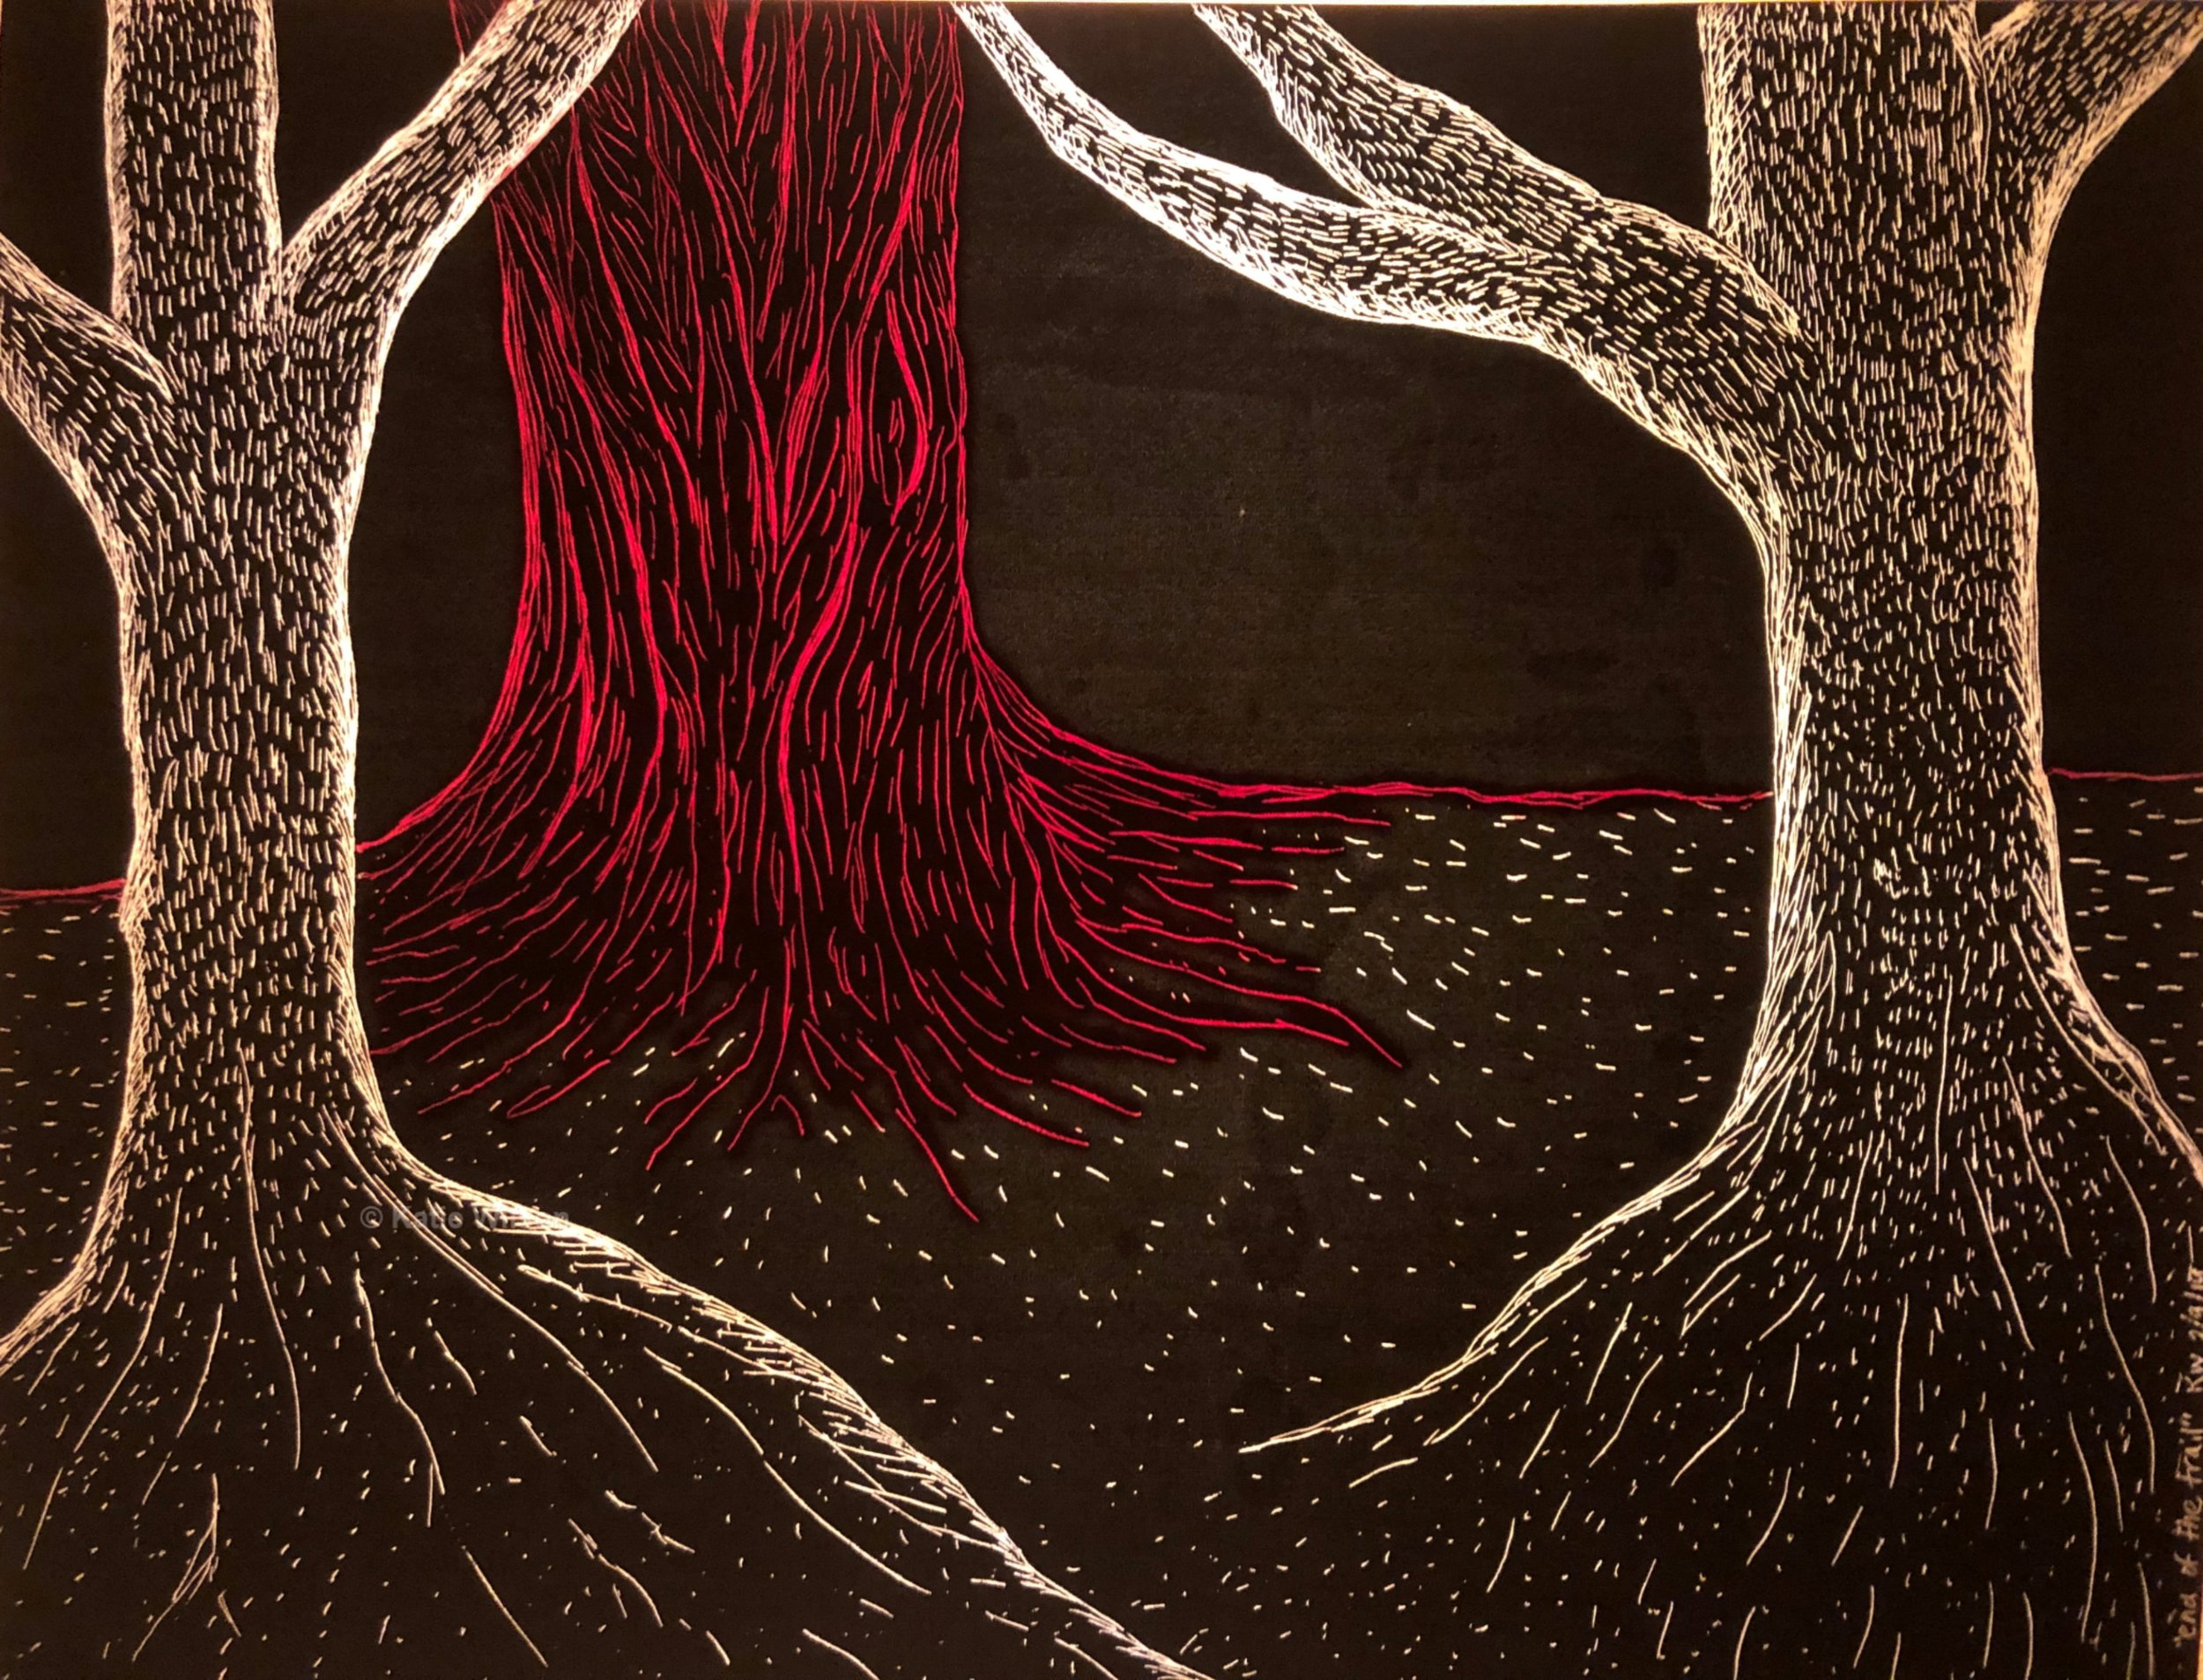 """End of the Trail, 2019 5"""" x 6""""   He found it at the end, just as the map showed, bark impossibly red and creviced. It was humming."""